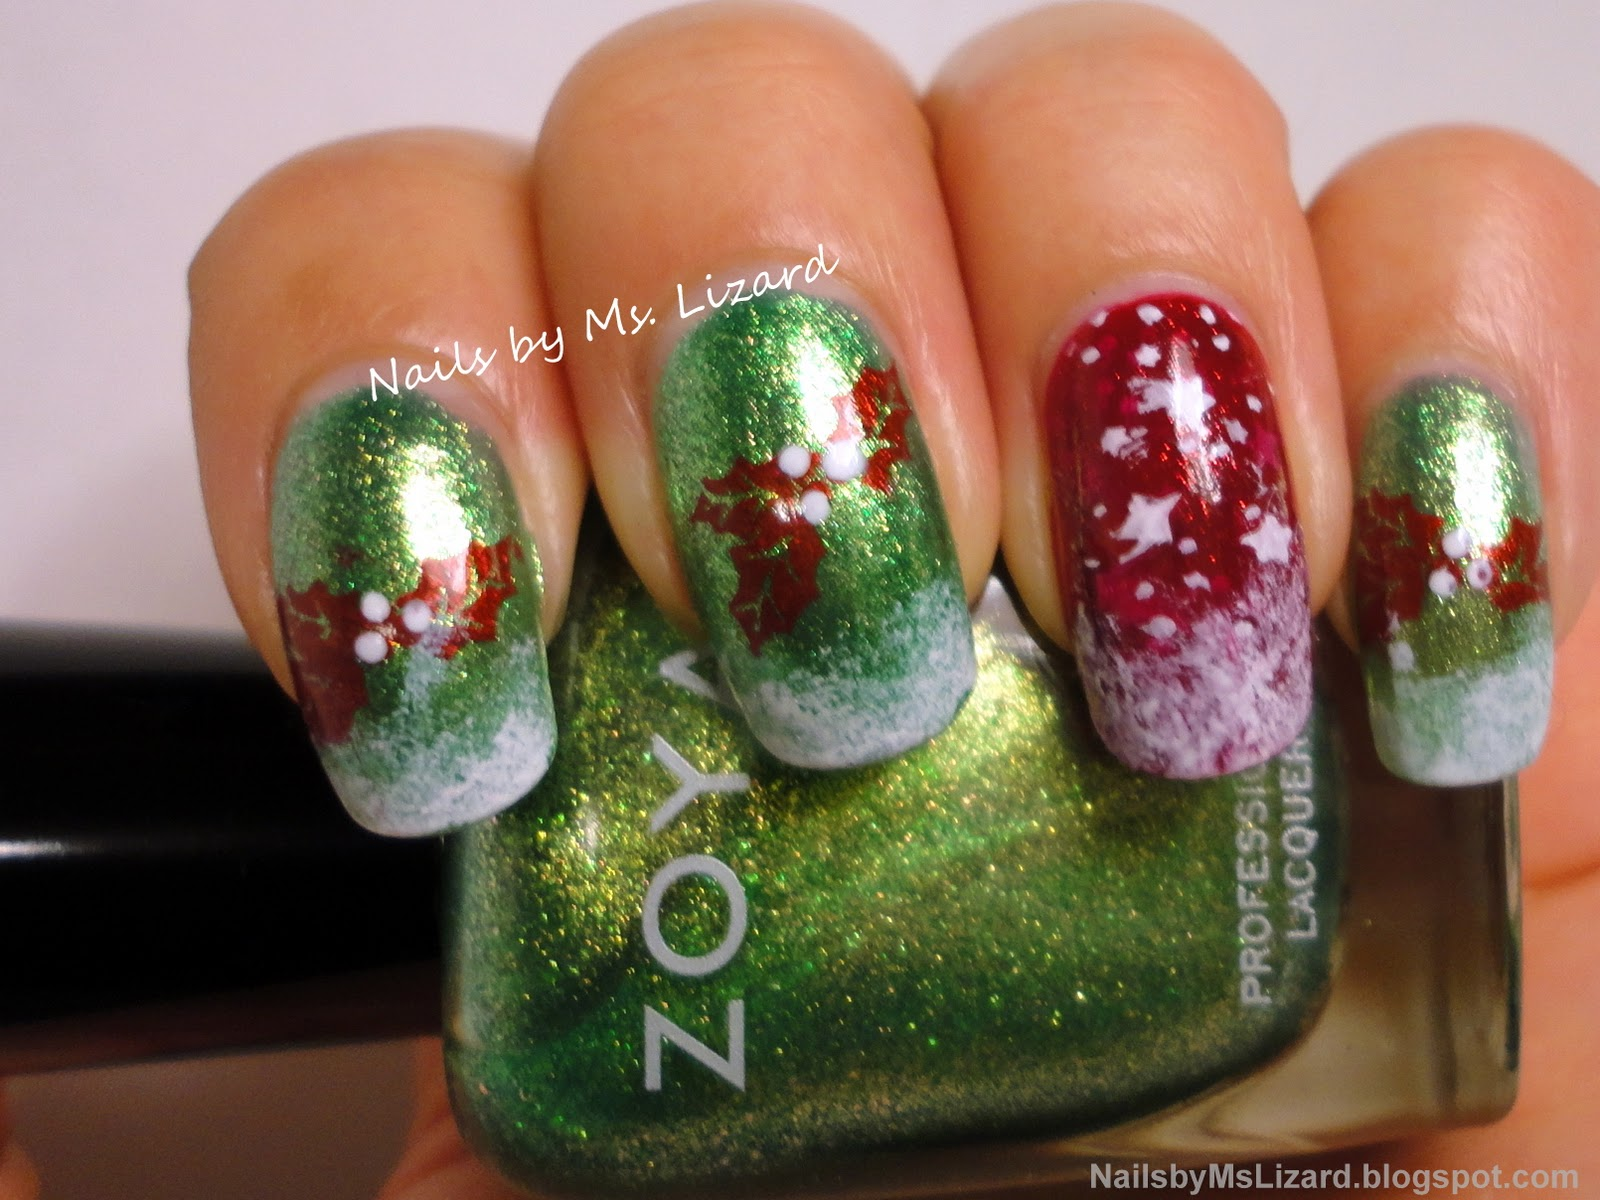 Nails by Ms. Lizard: December 2011